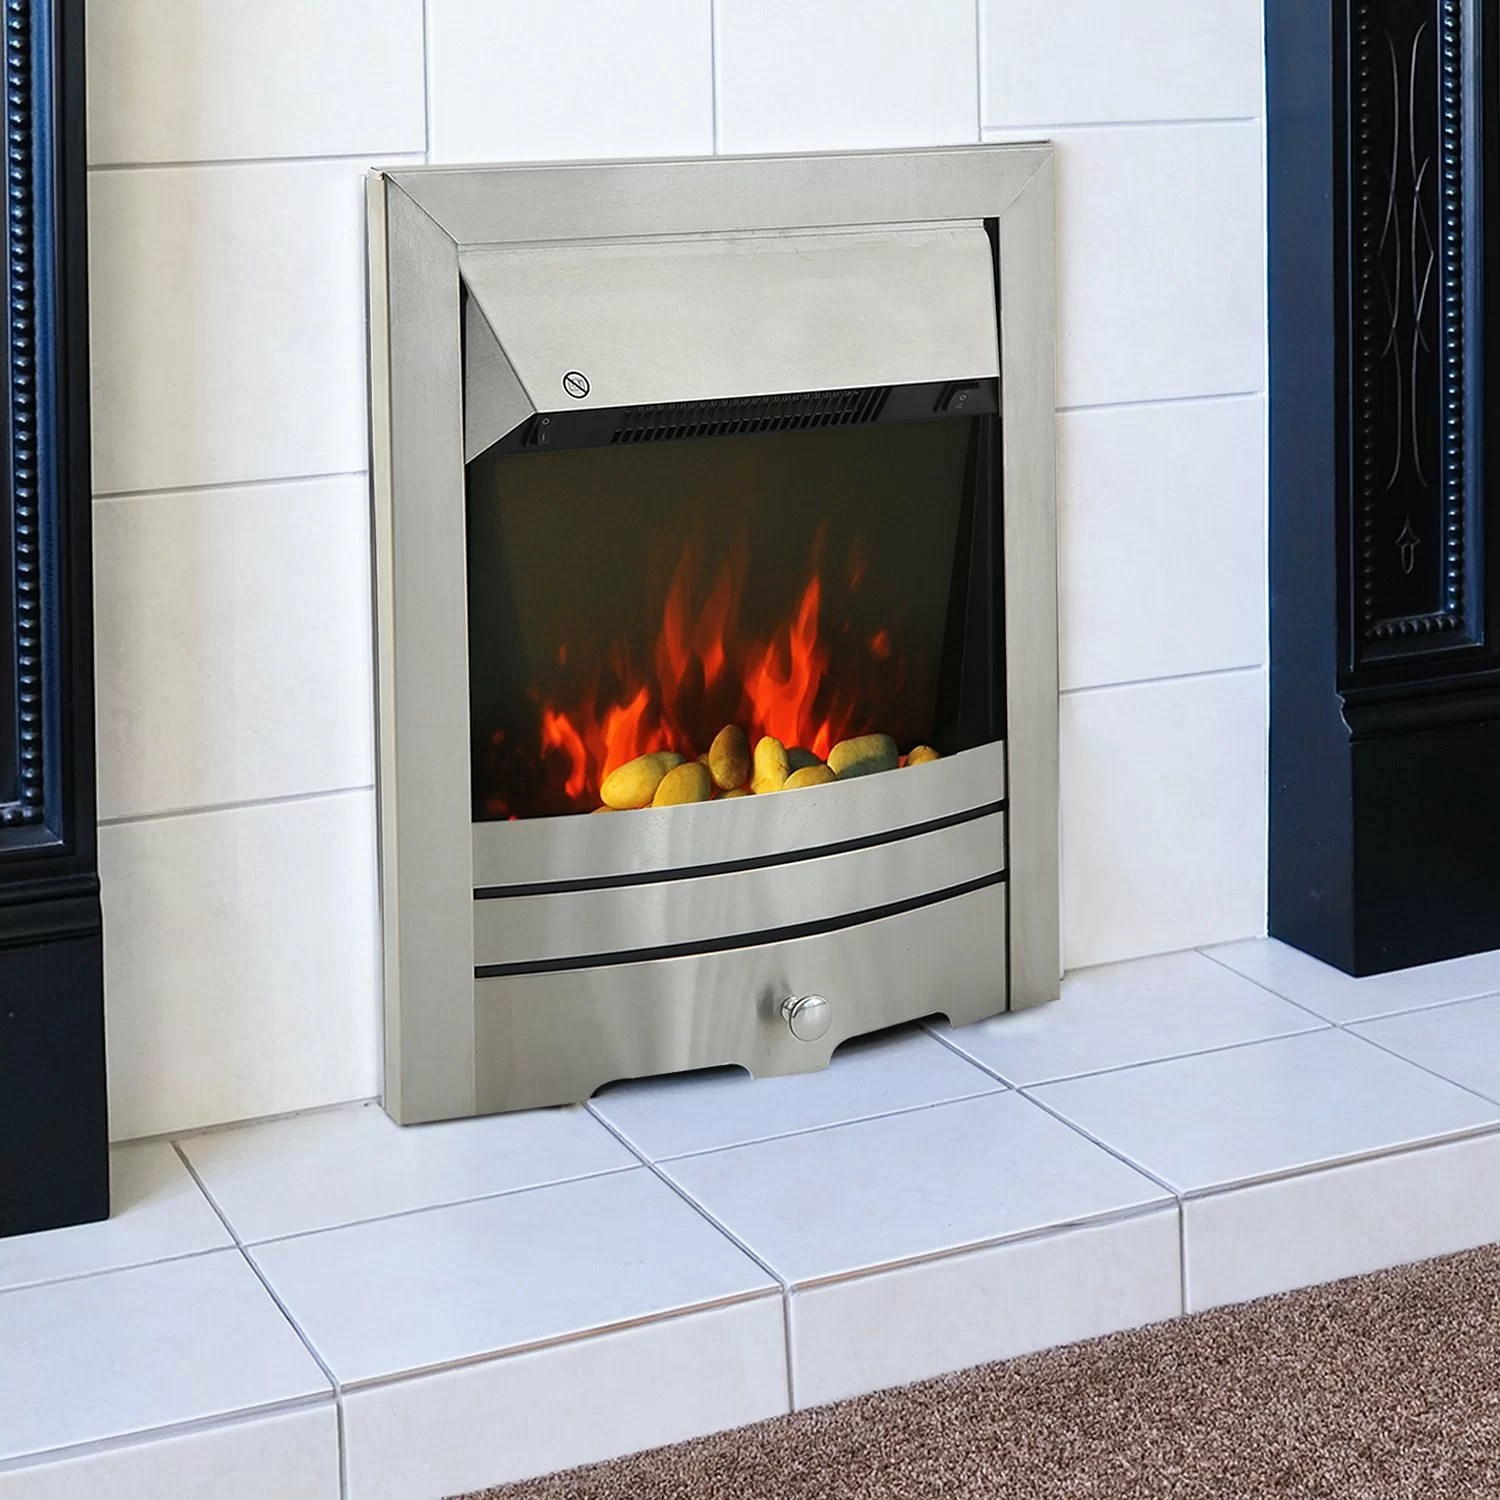 Stainless Steel Fireplace Homcom Stainless Steel Electric Fireplace Wayfair Uk